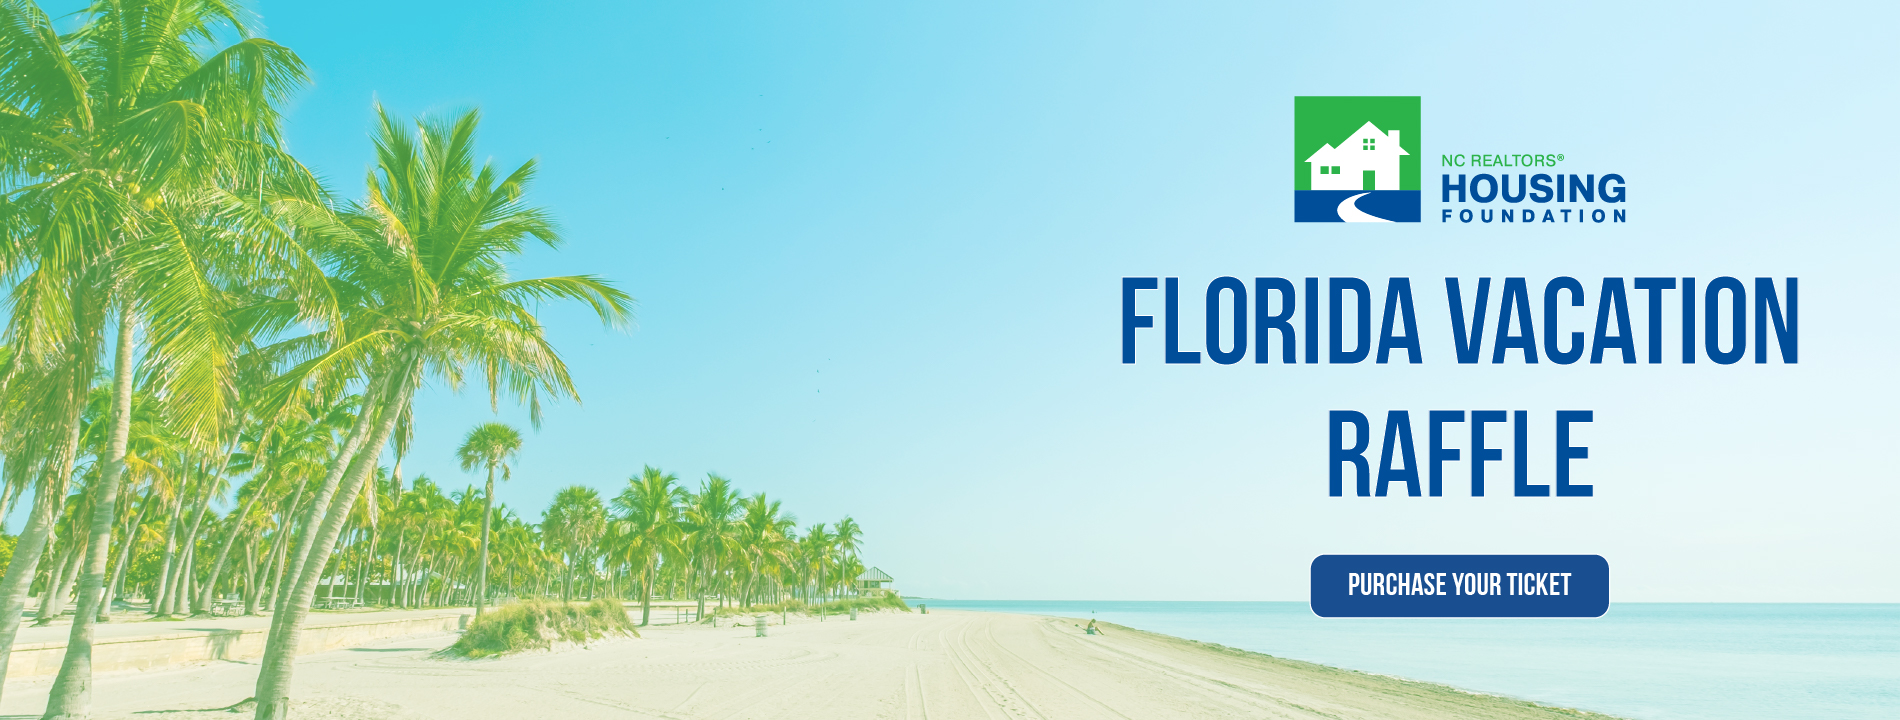 NCRHF Florida Vacation Raffle Website Slider